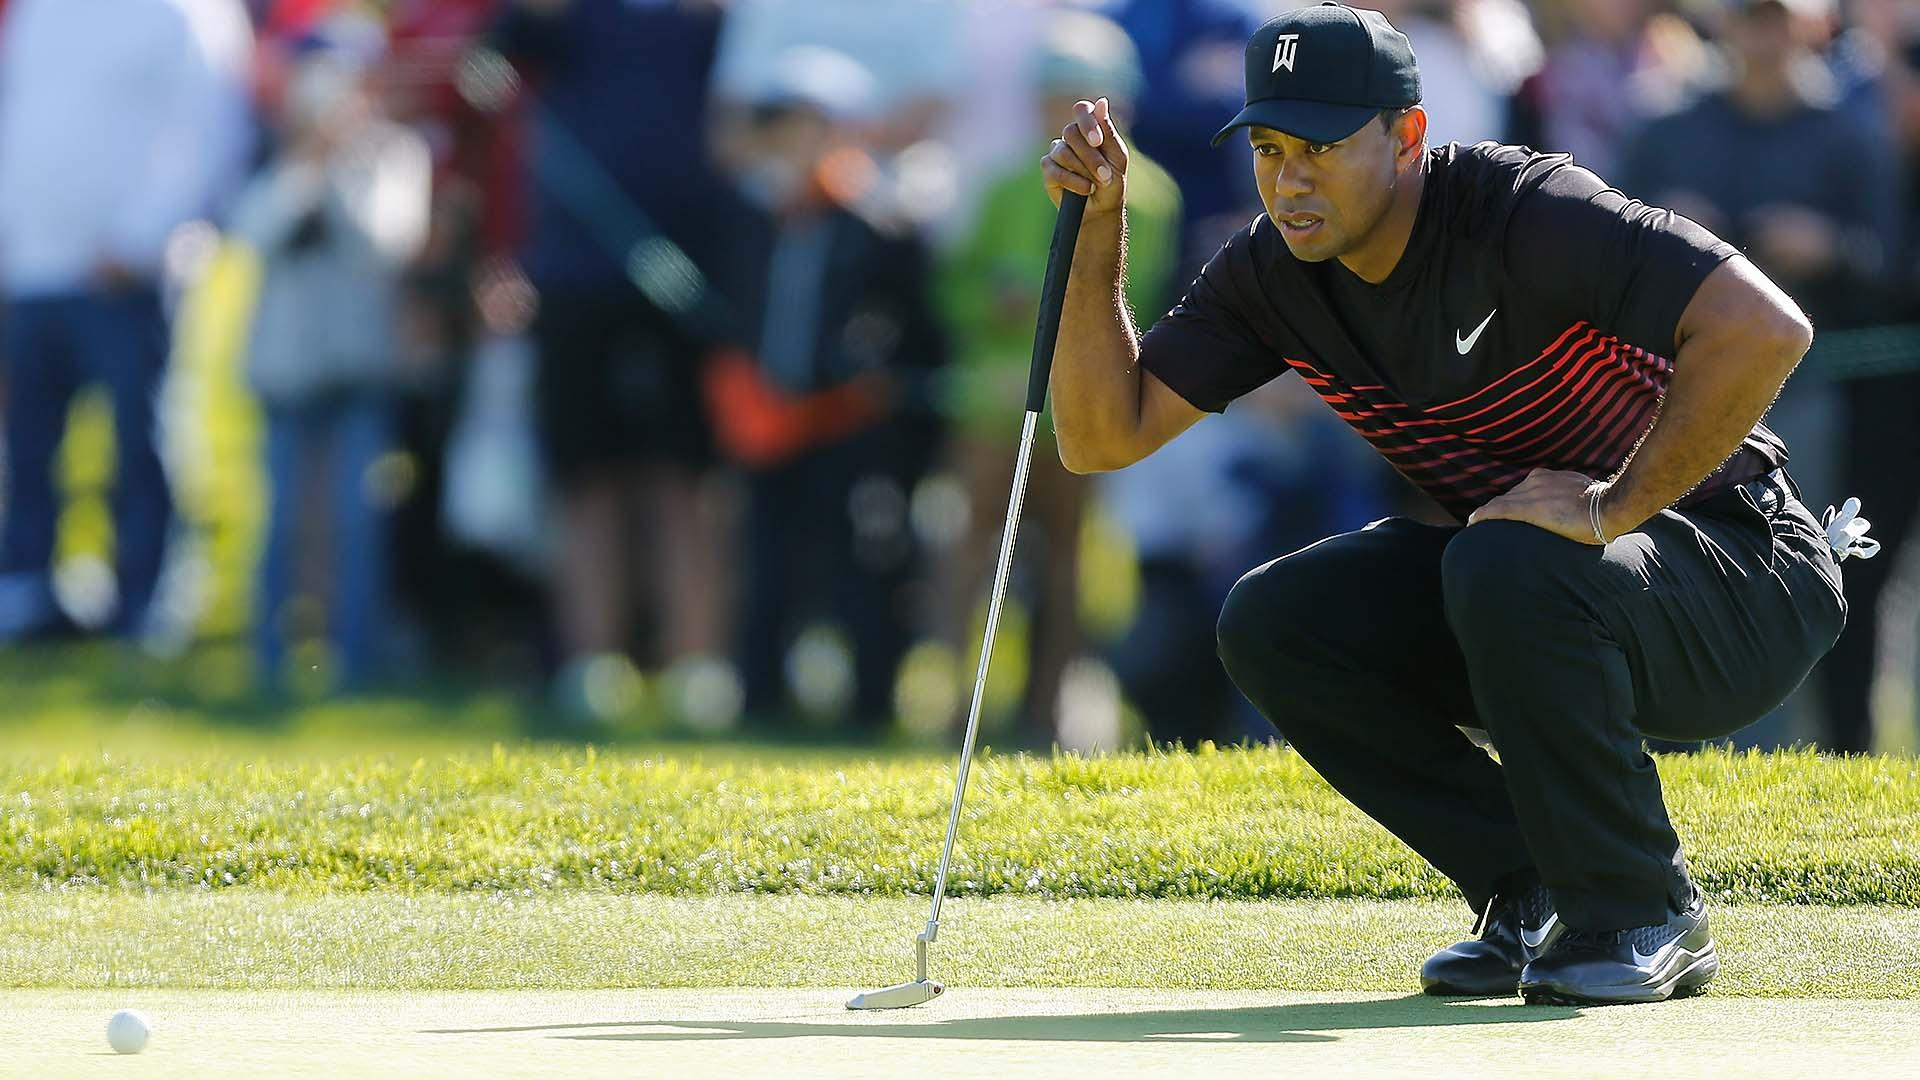 How to watch tiger woods live at the 2018 honda classic for Honda classic 2018